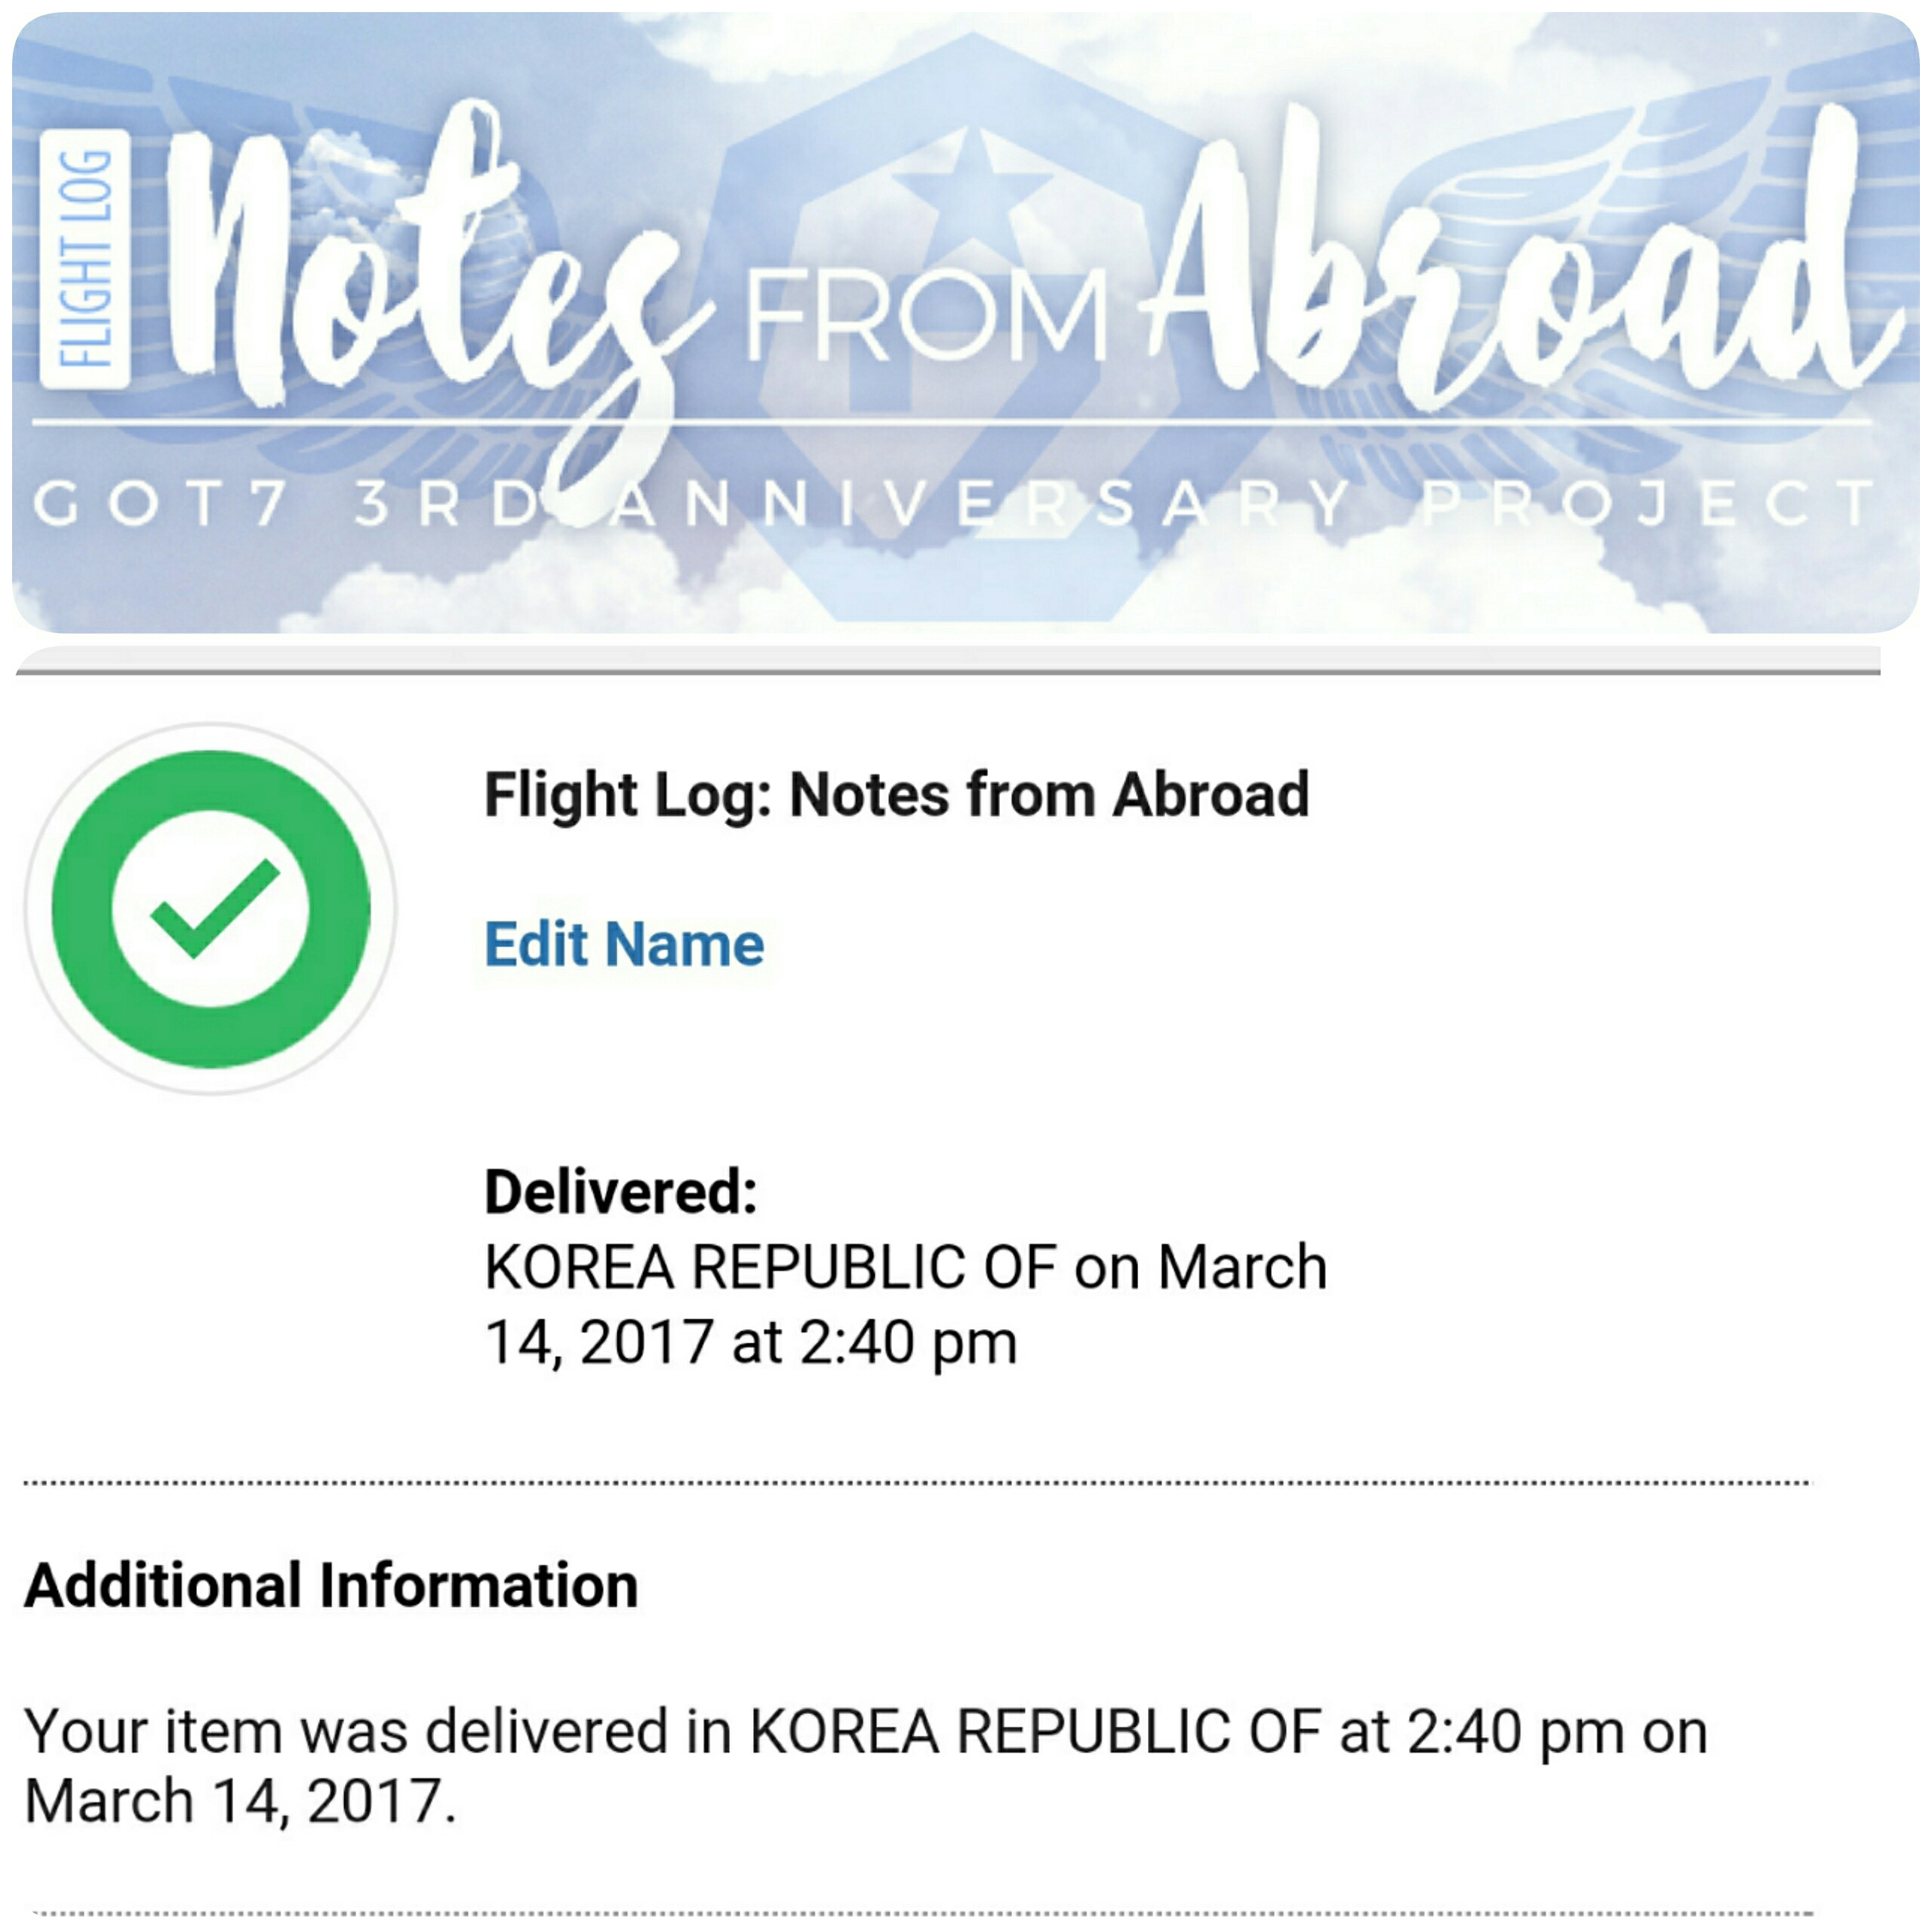 Flight Log: Notes from Abroad Fan Project delivered